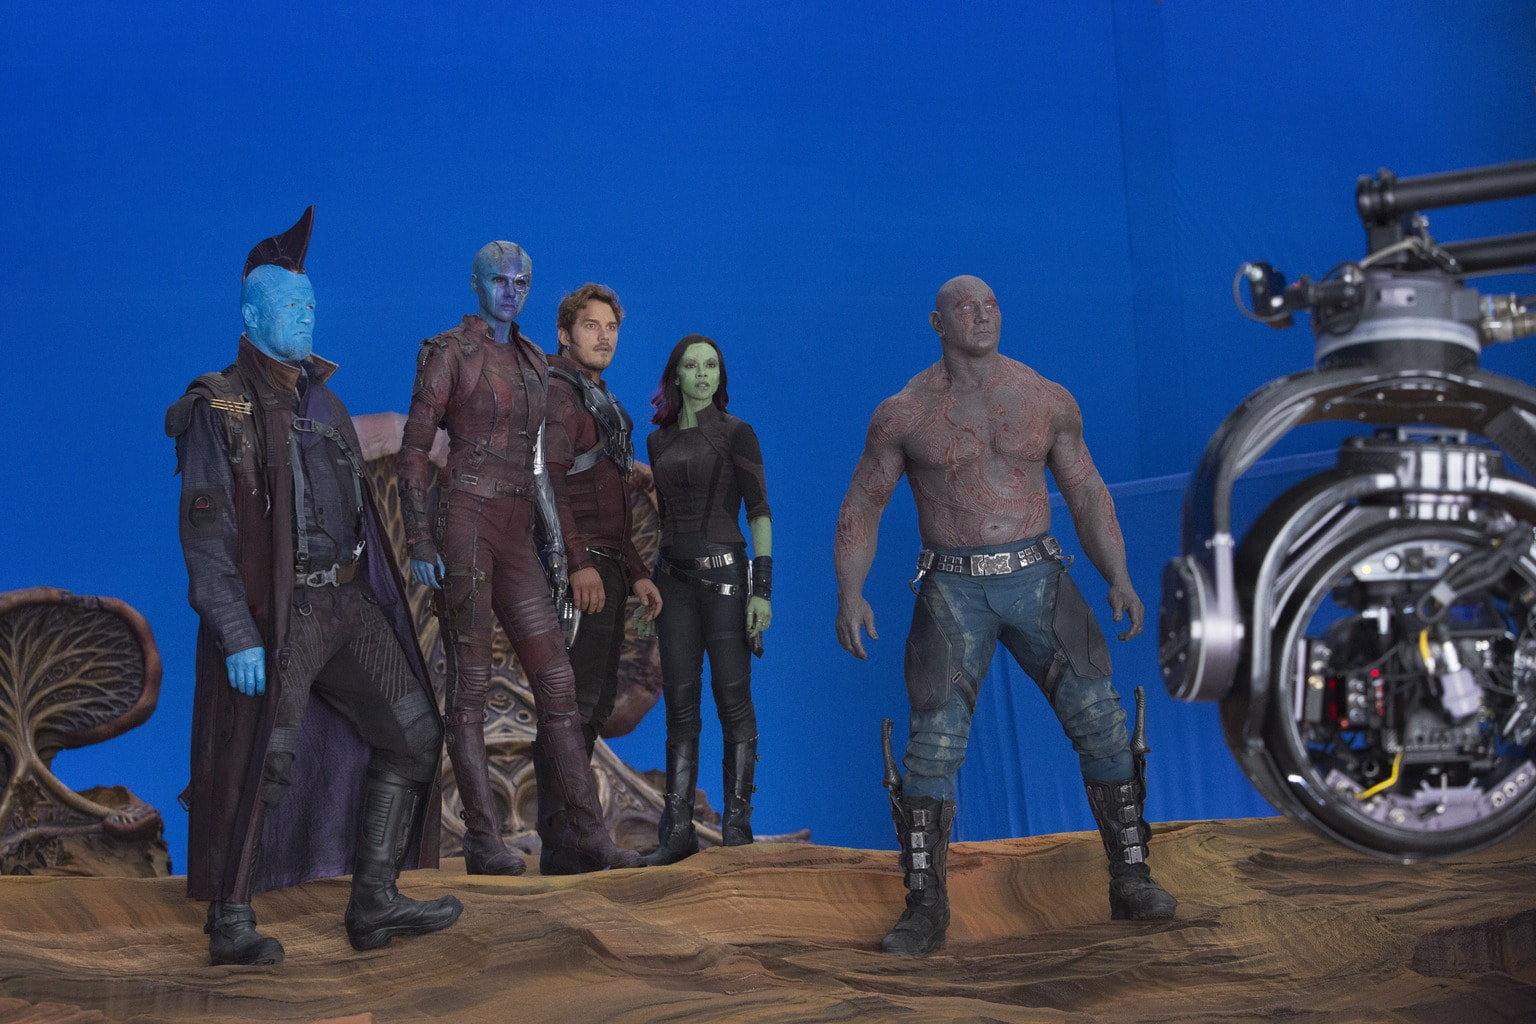 Who's excited about seeing Michael Rooker, Yondu, in Guardians of the Galaxy Vol. 2?